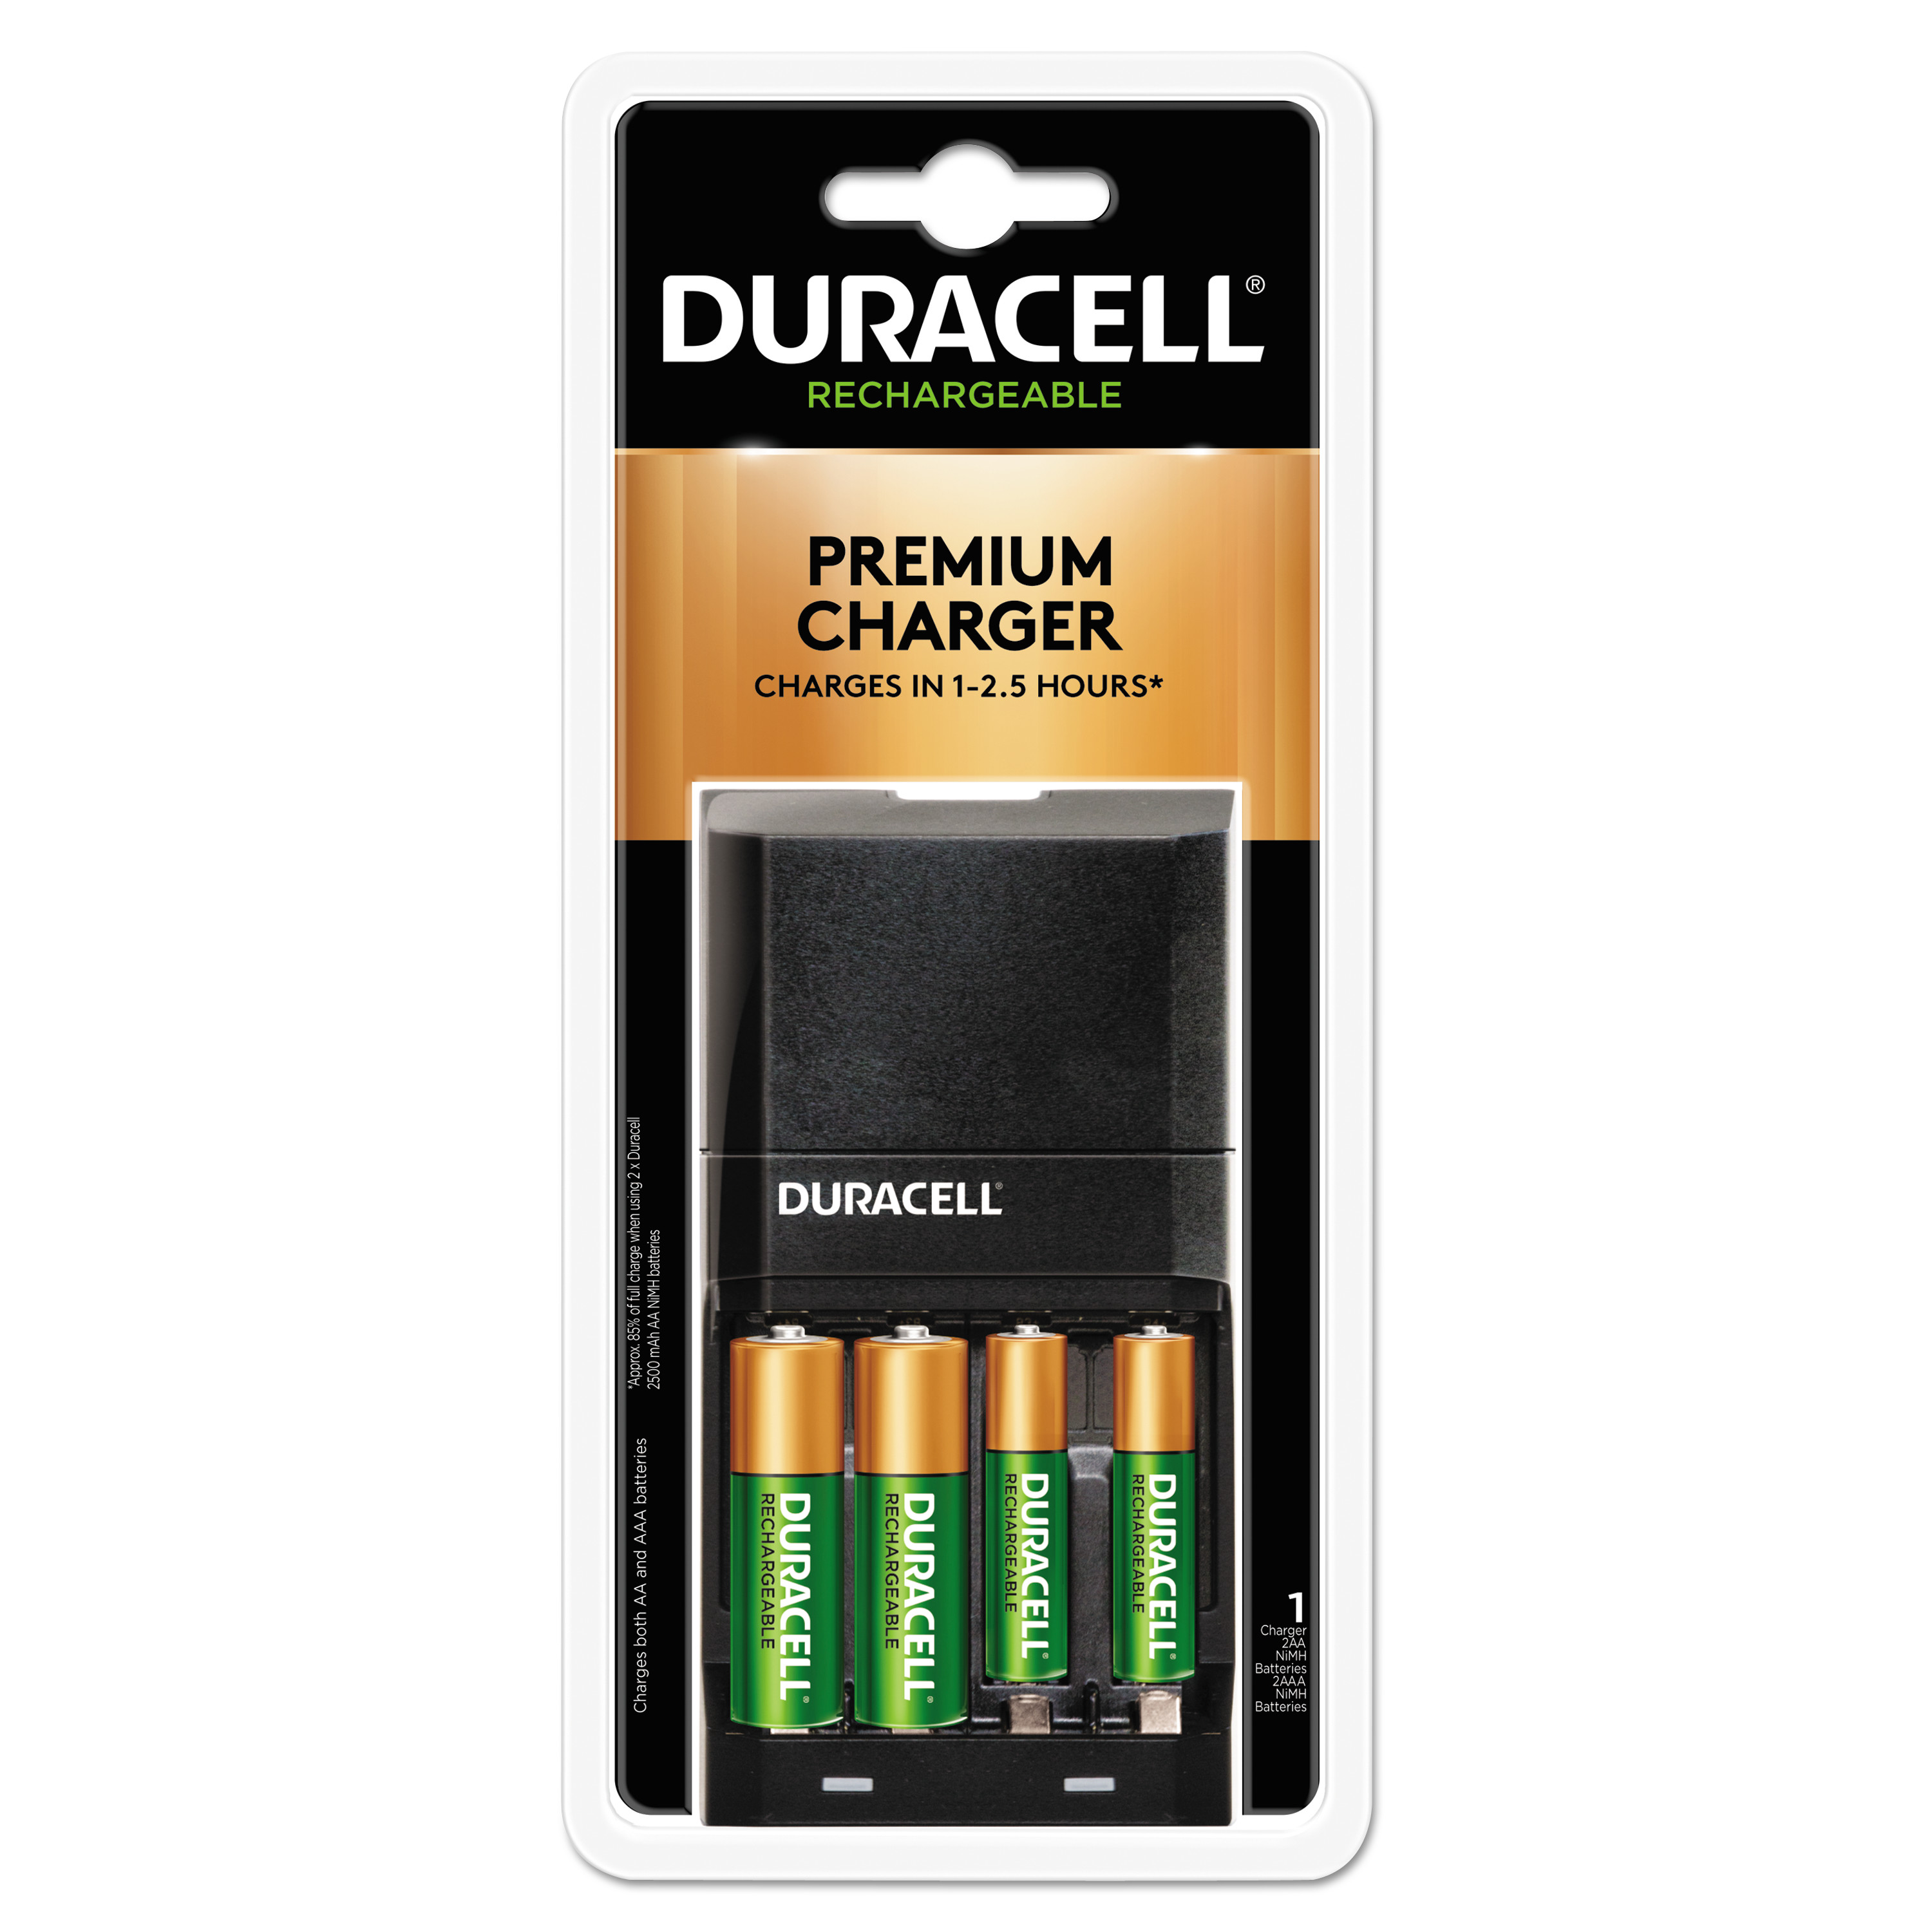 Duracell Ion Speed 4000 Hi Performance Charger Includes 2